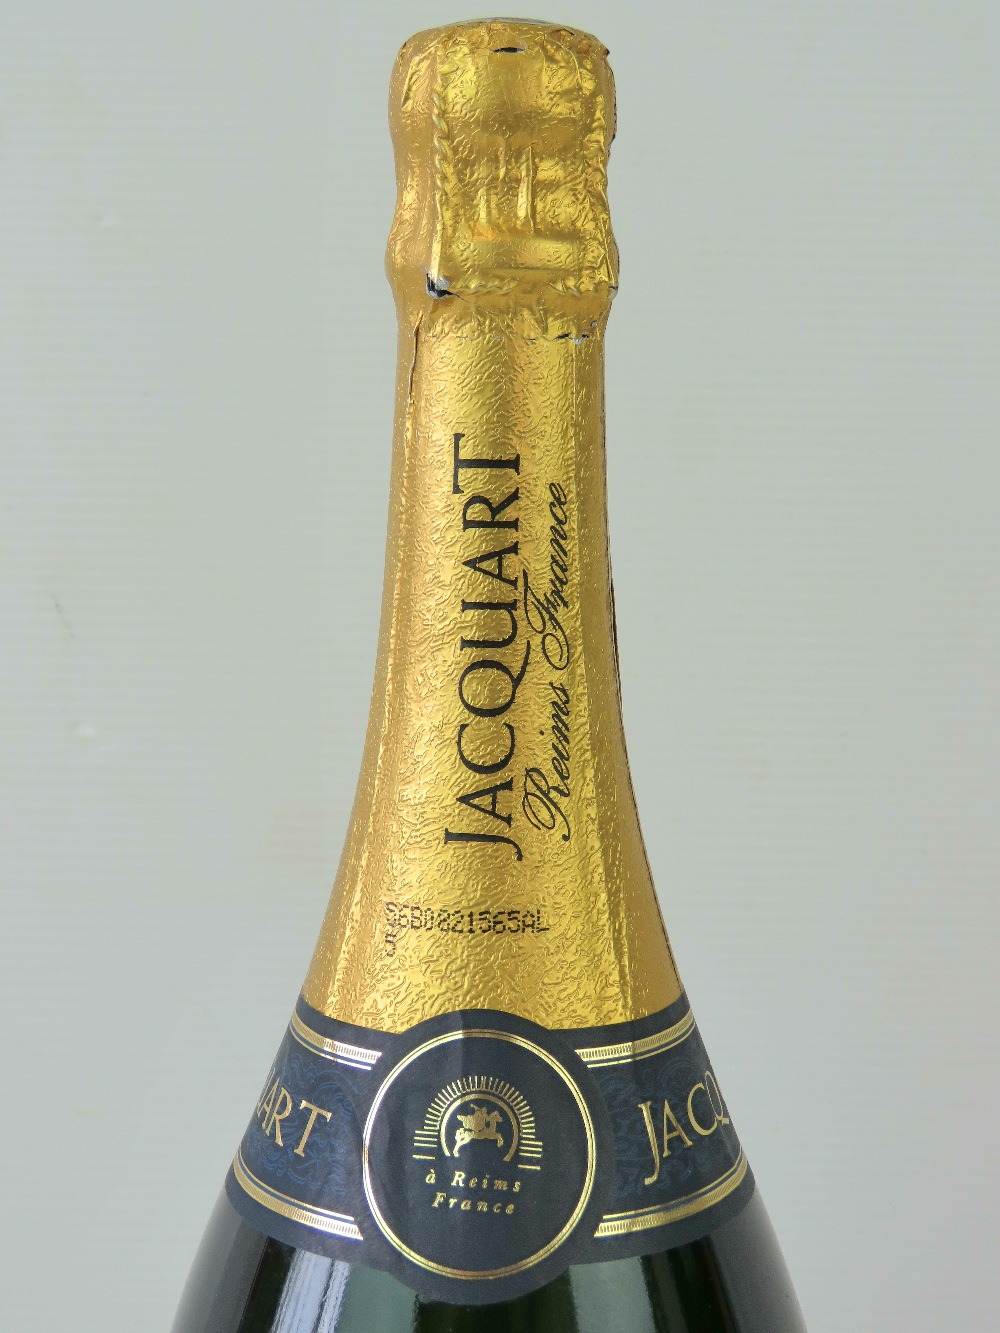 Lot 474 - A rare commemorative Jacquart Reims (France) limited edition World Cup Magnum of champagne signed